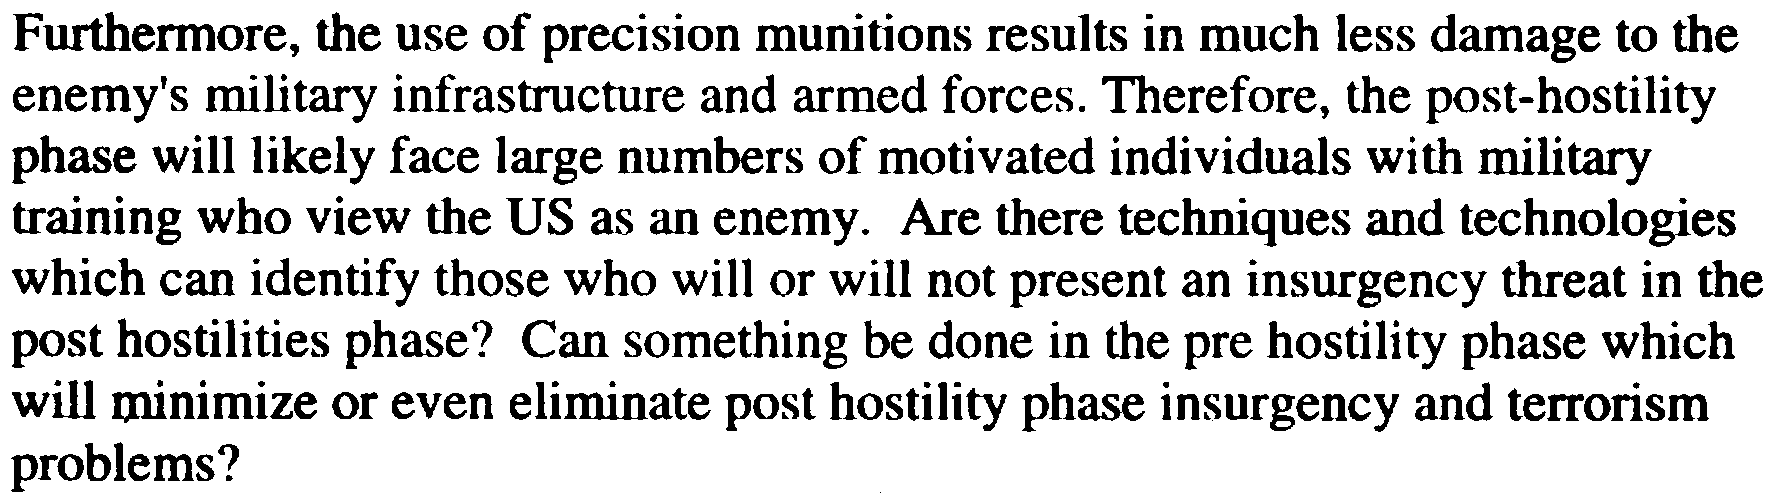 Furthermore, the use of precision munitions results in much less damage to the enemy's military infrastructure and armed forces.